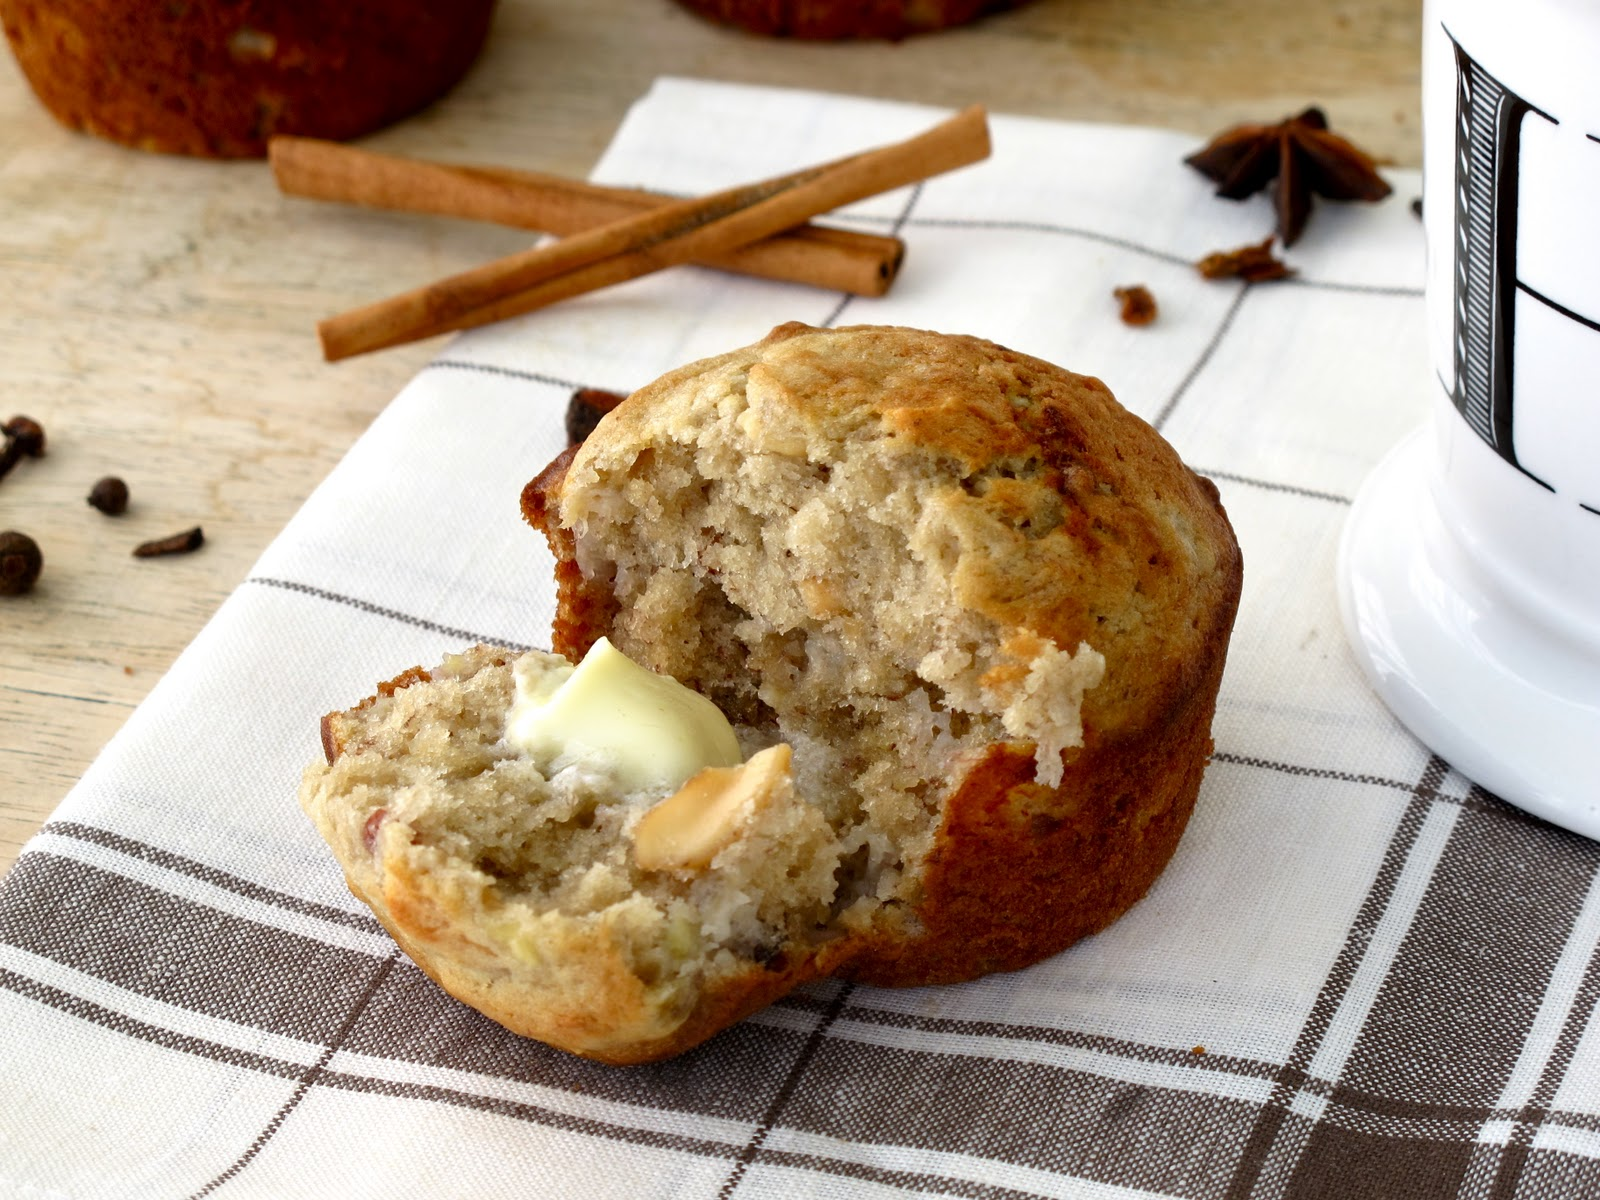 ... Hobick: Banana Nut Muffins | Homemade Banana Nut Muffin Recipe